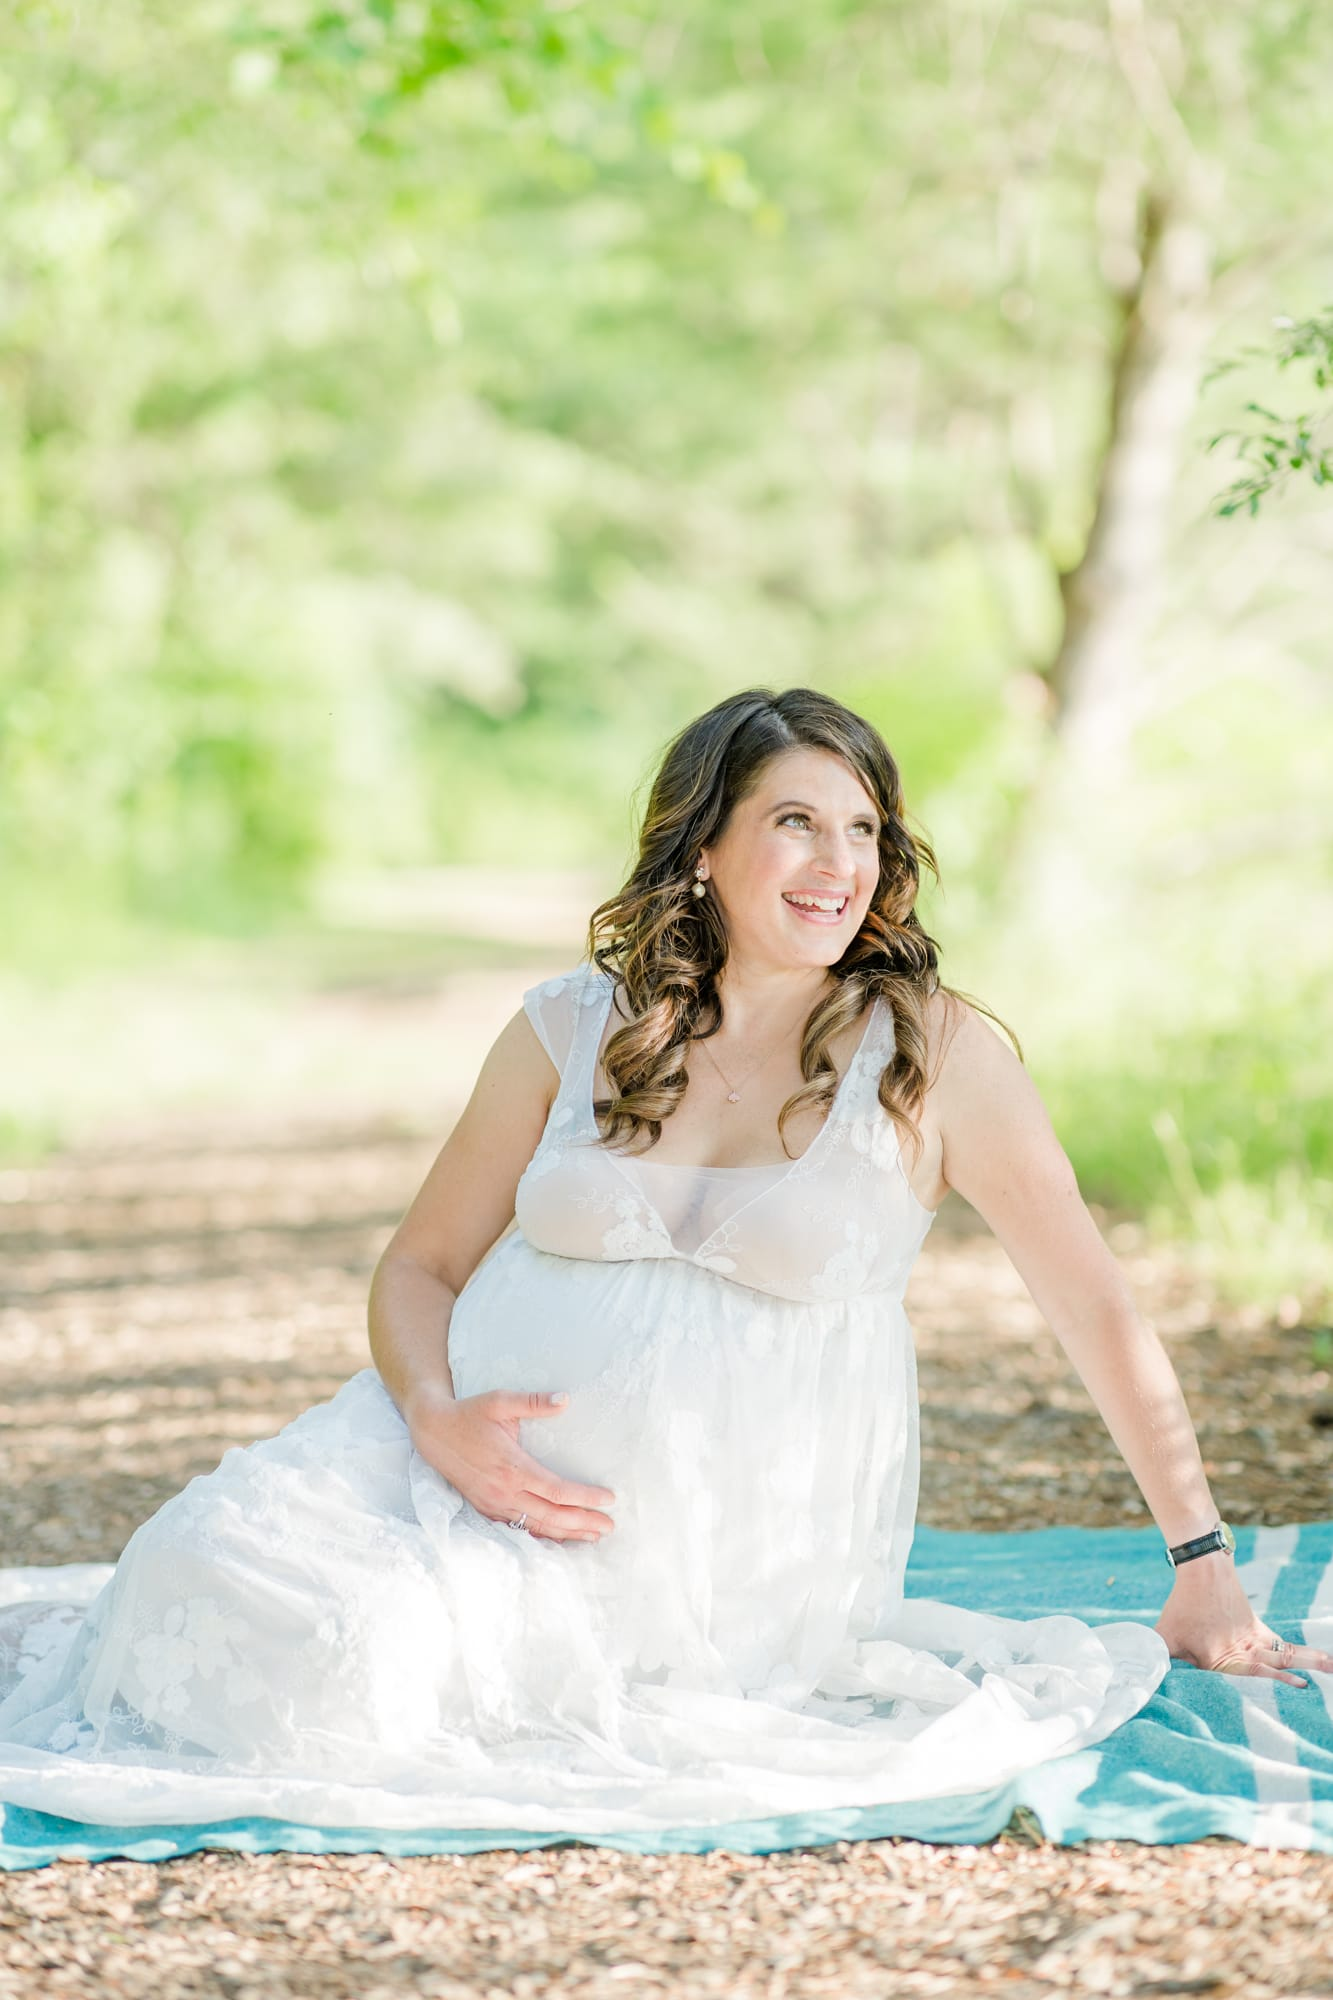 State College maternity photos at Tussey Mountain